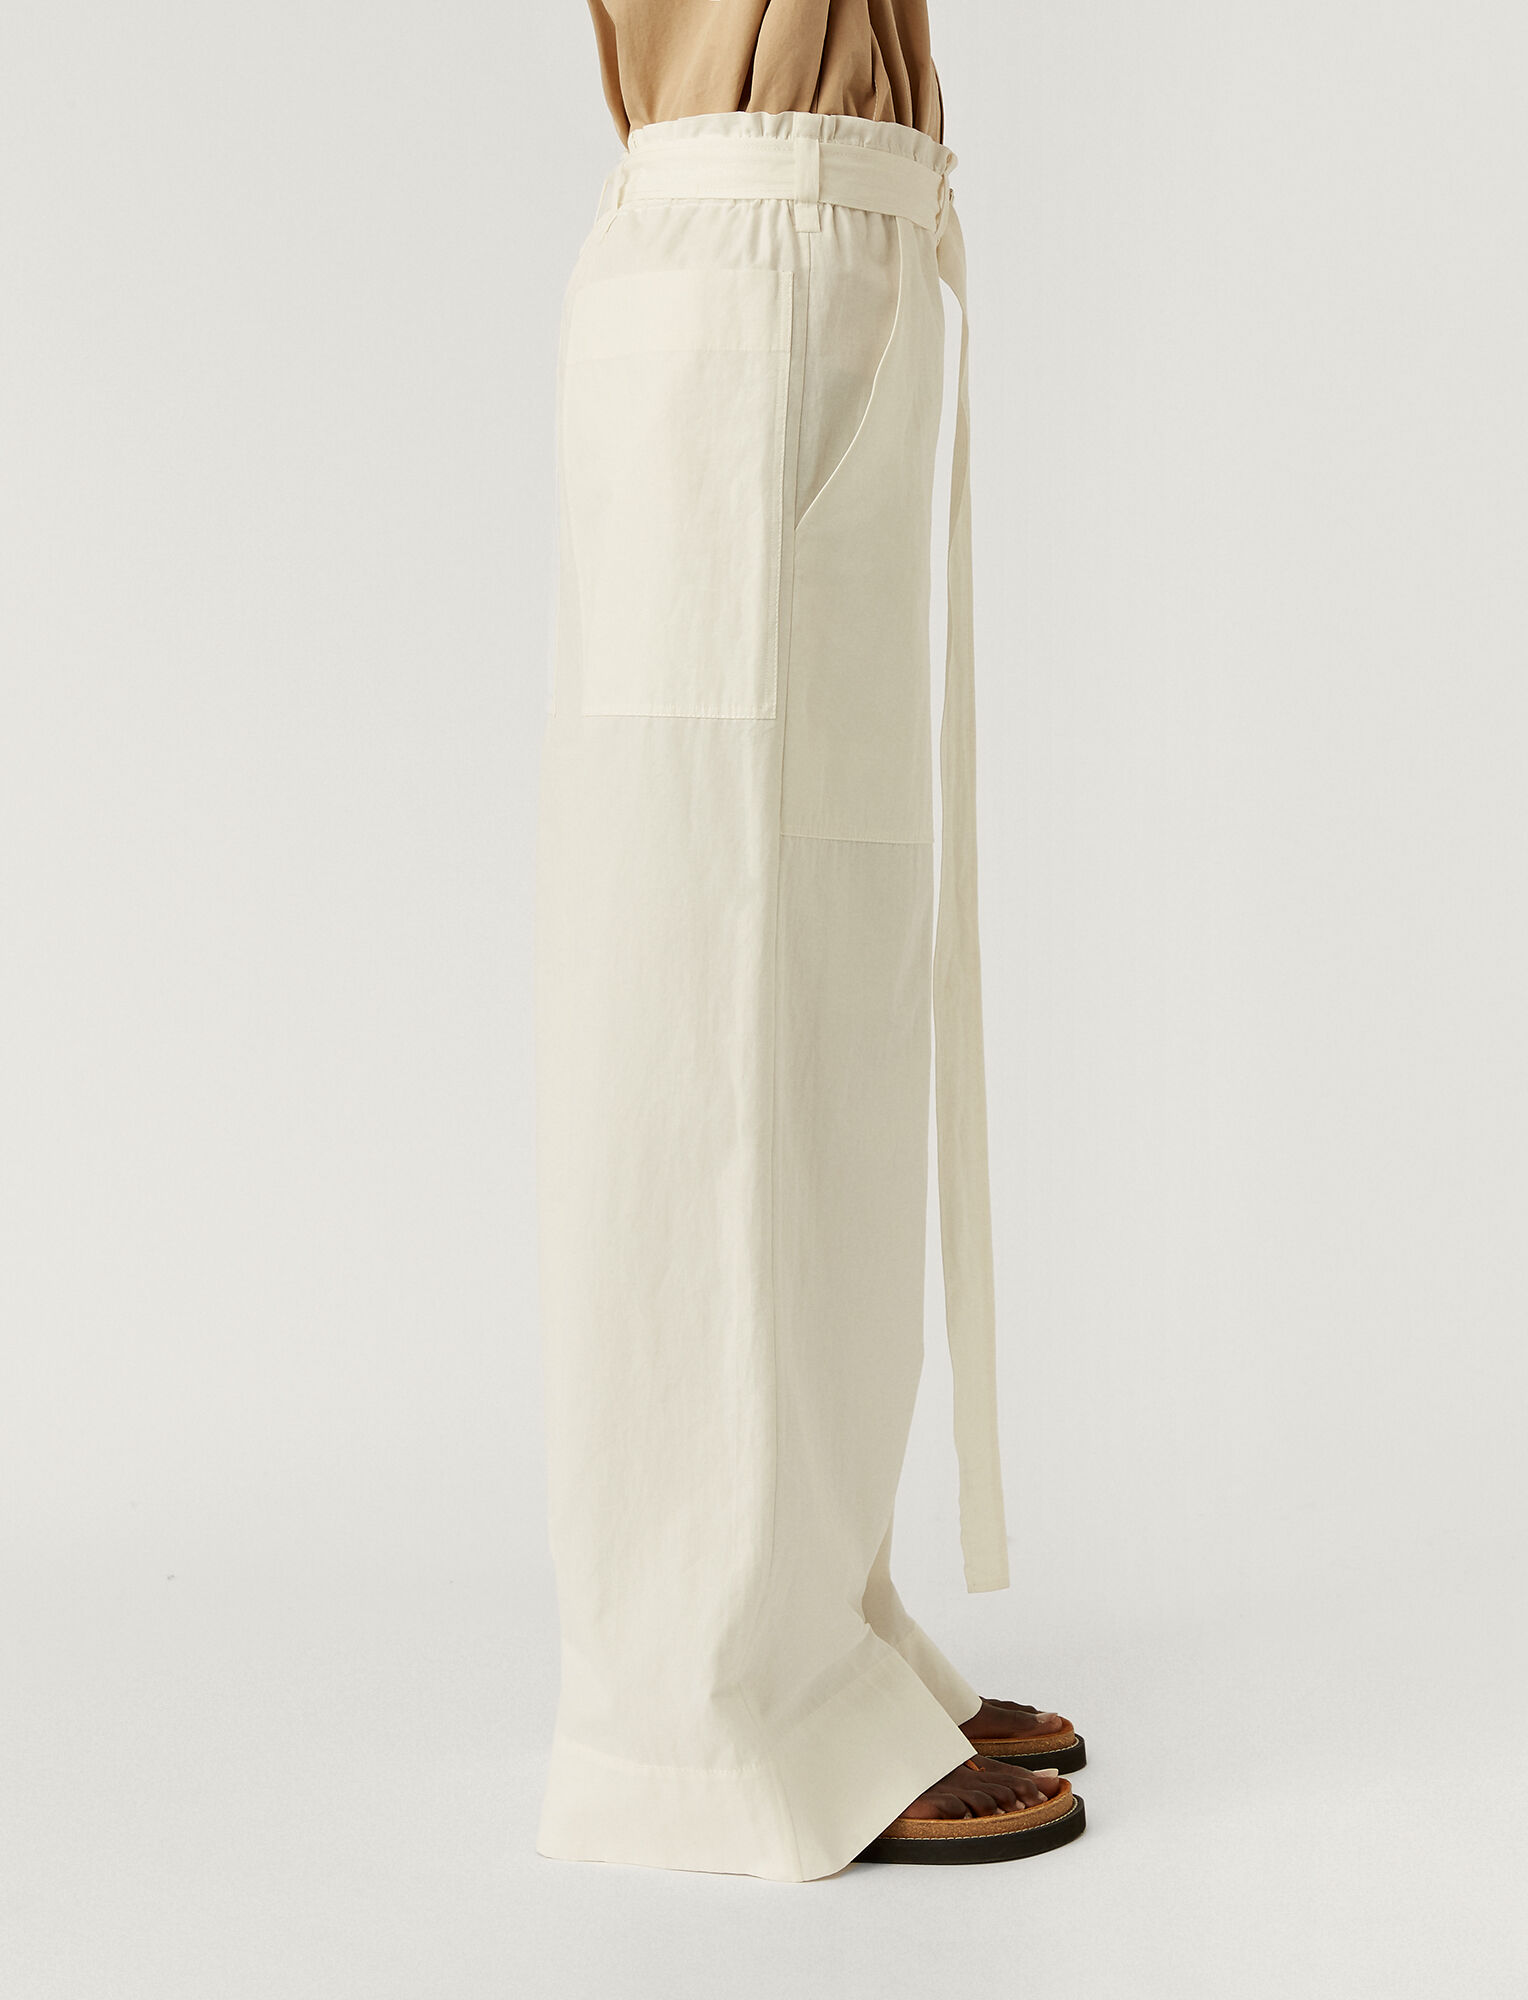 Joseph, Cotton Linen Taika Trousers, in OFF WHITE